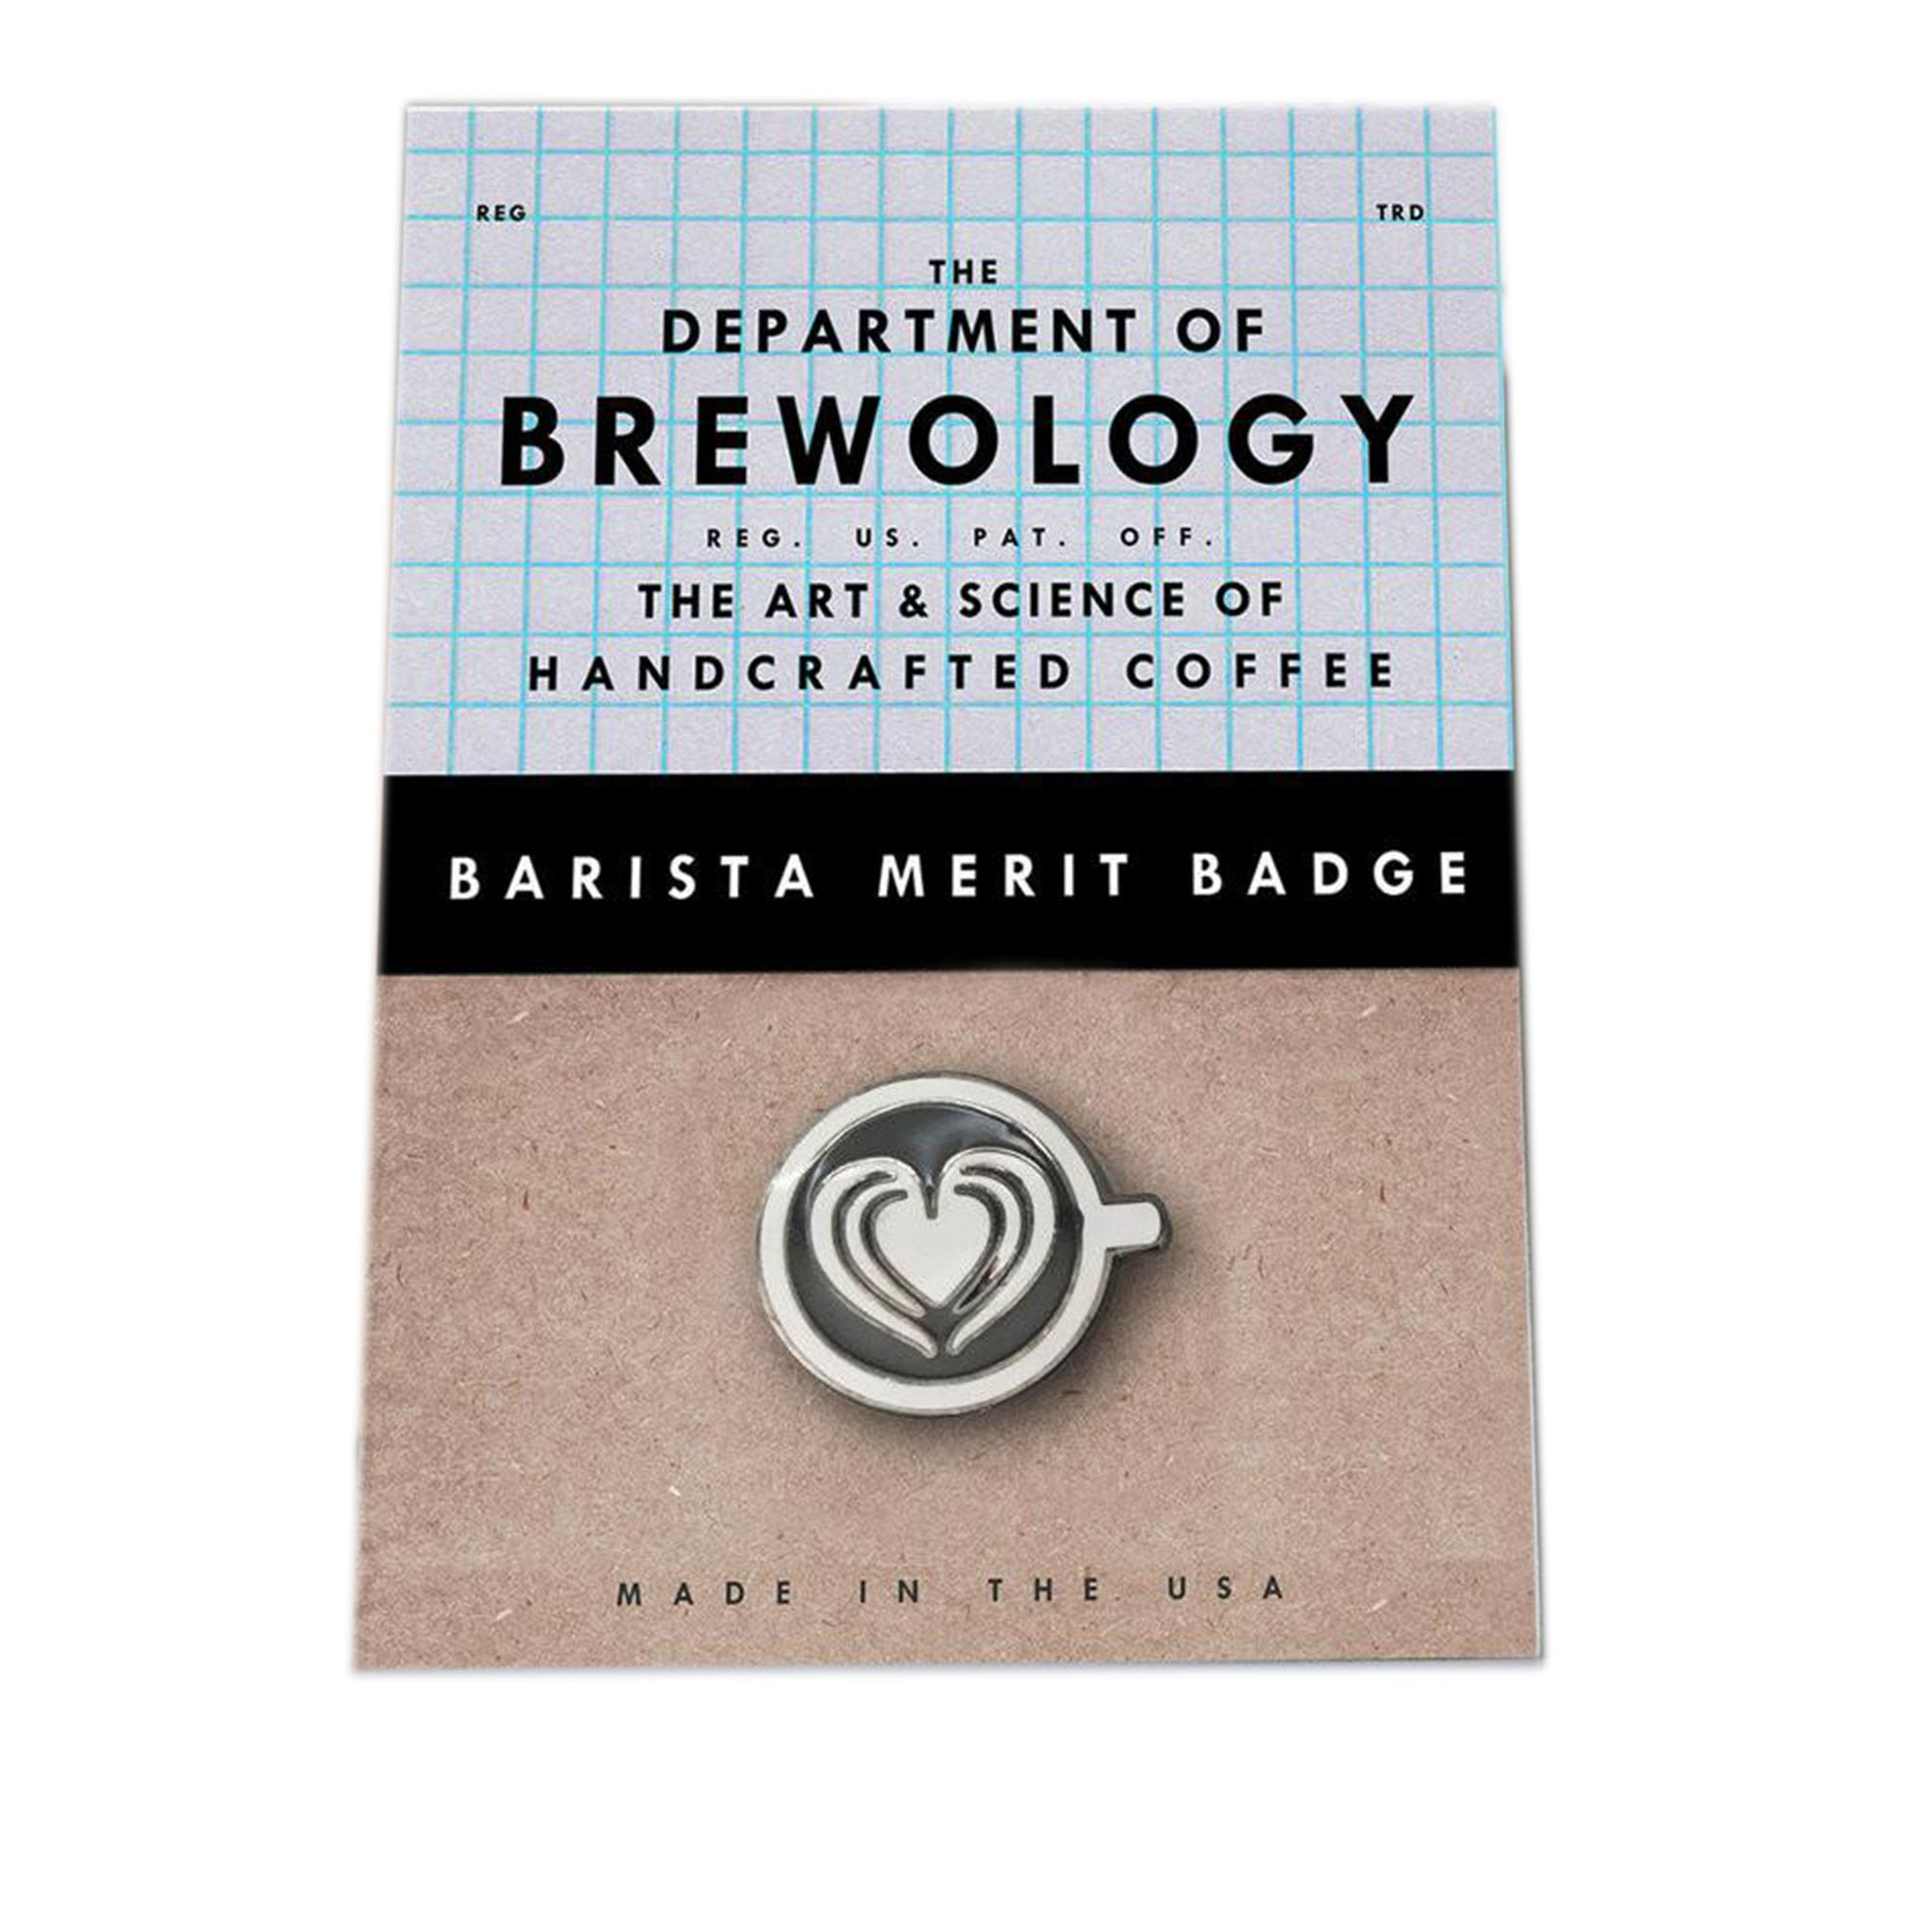 Barista Merit Badge - Heart - Dept of Brewology - Espresso Gear